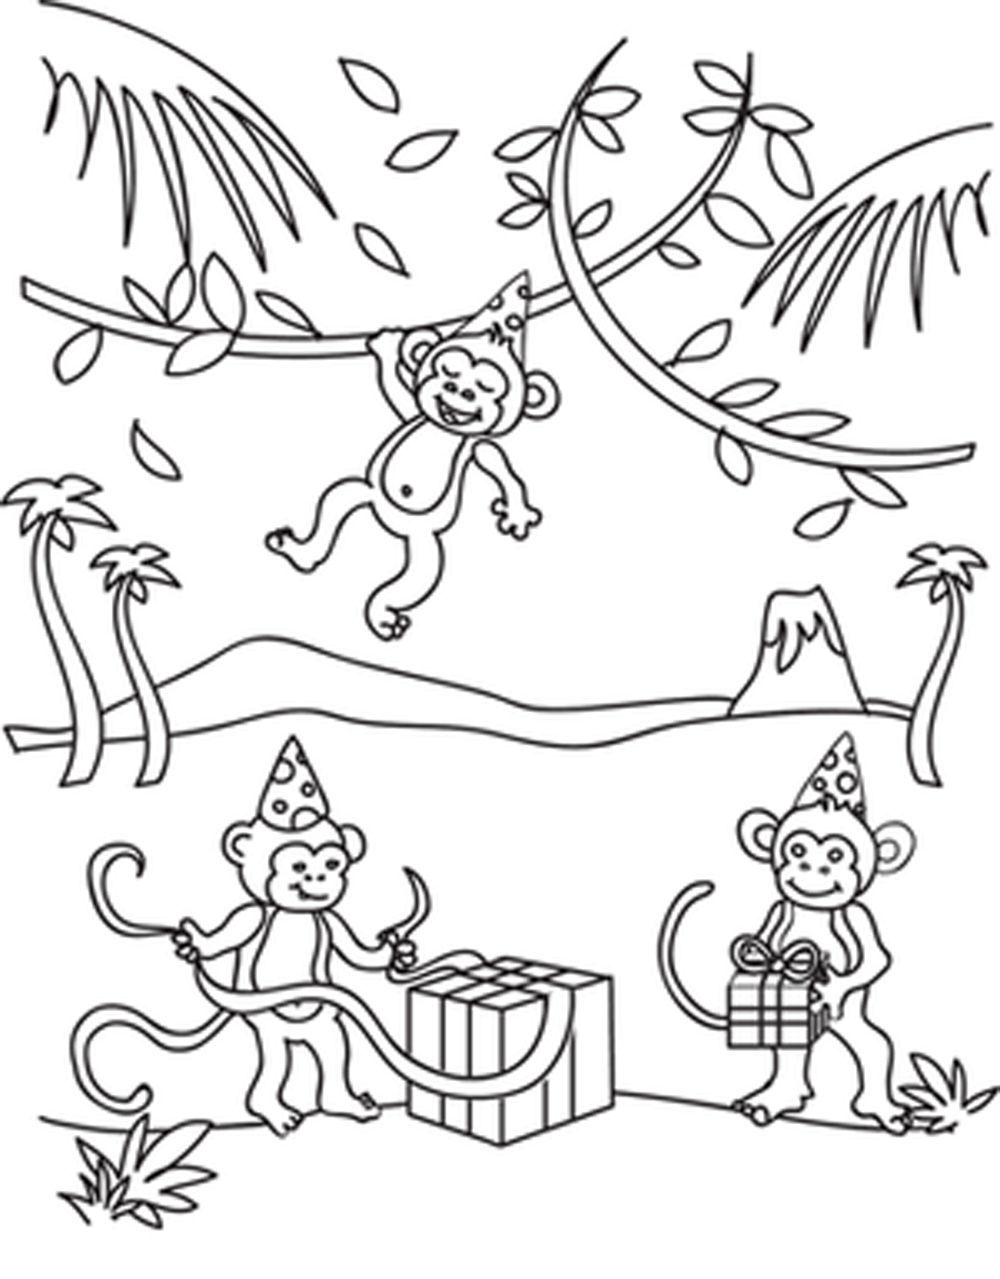 Print & Download - Coloring Monkey Head with Monkey Coloring Pages -